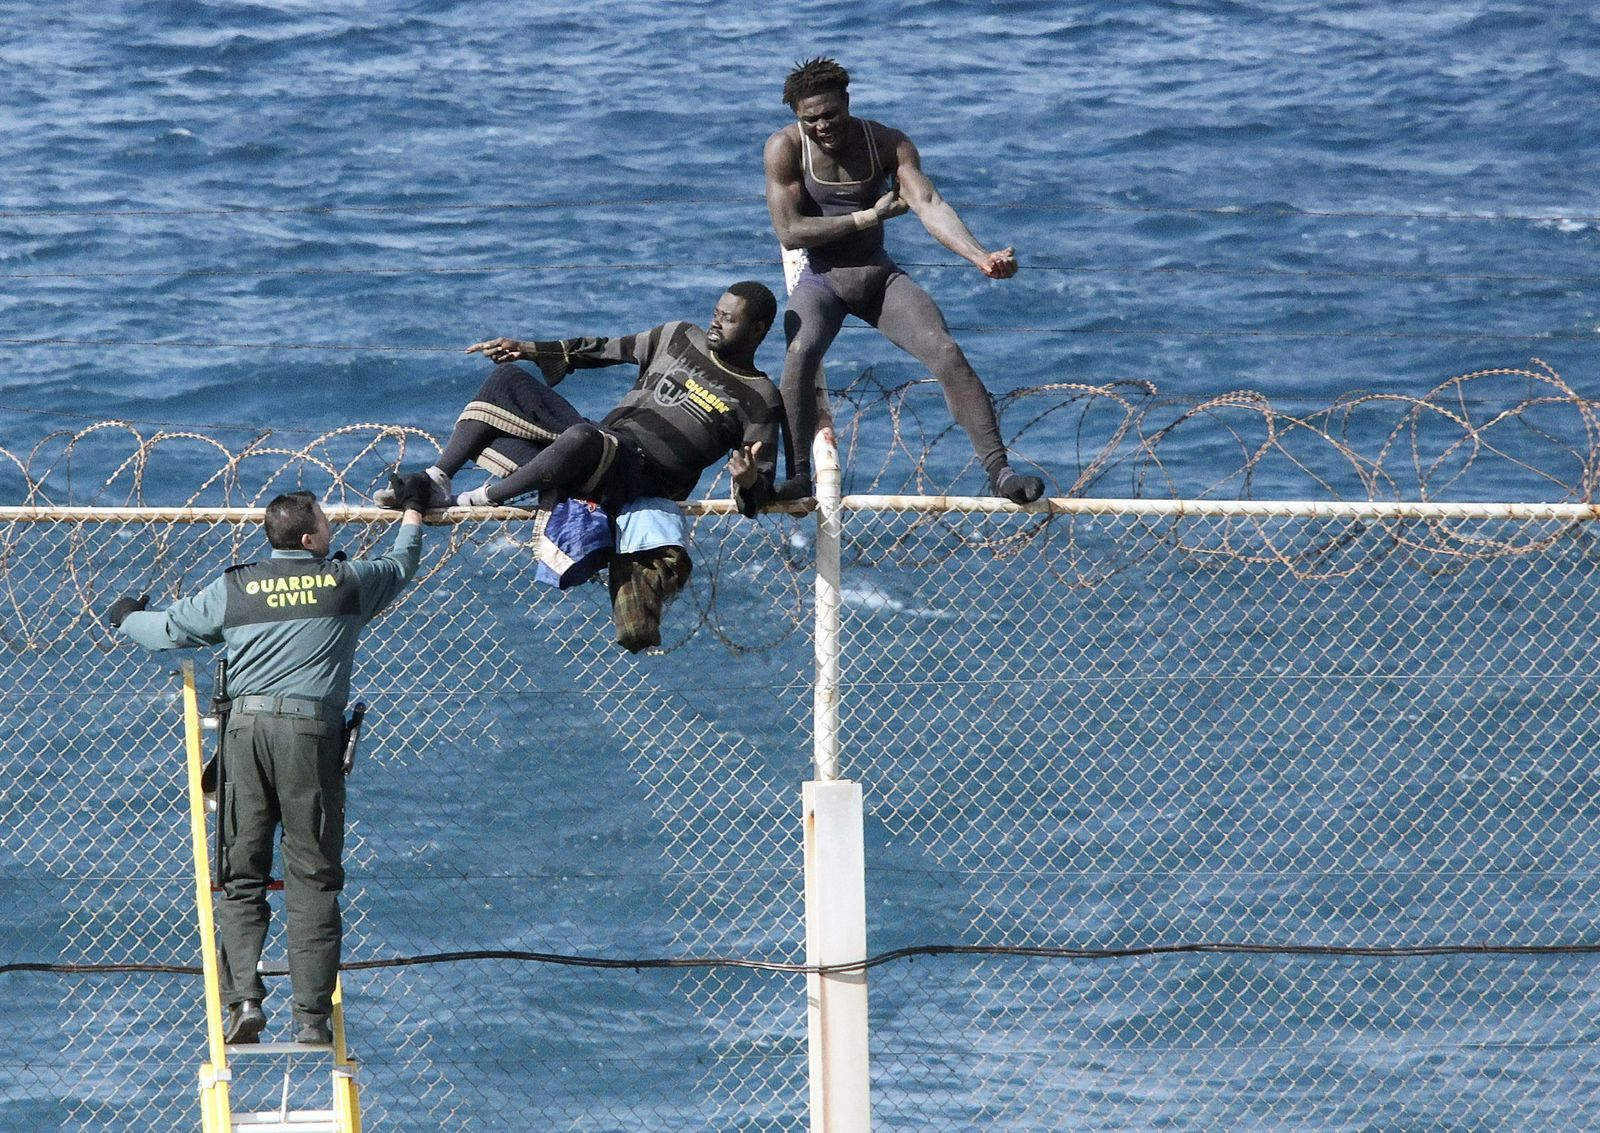 Immigrants try to cross Ceuta border fence